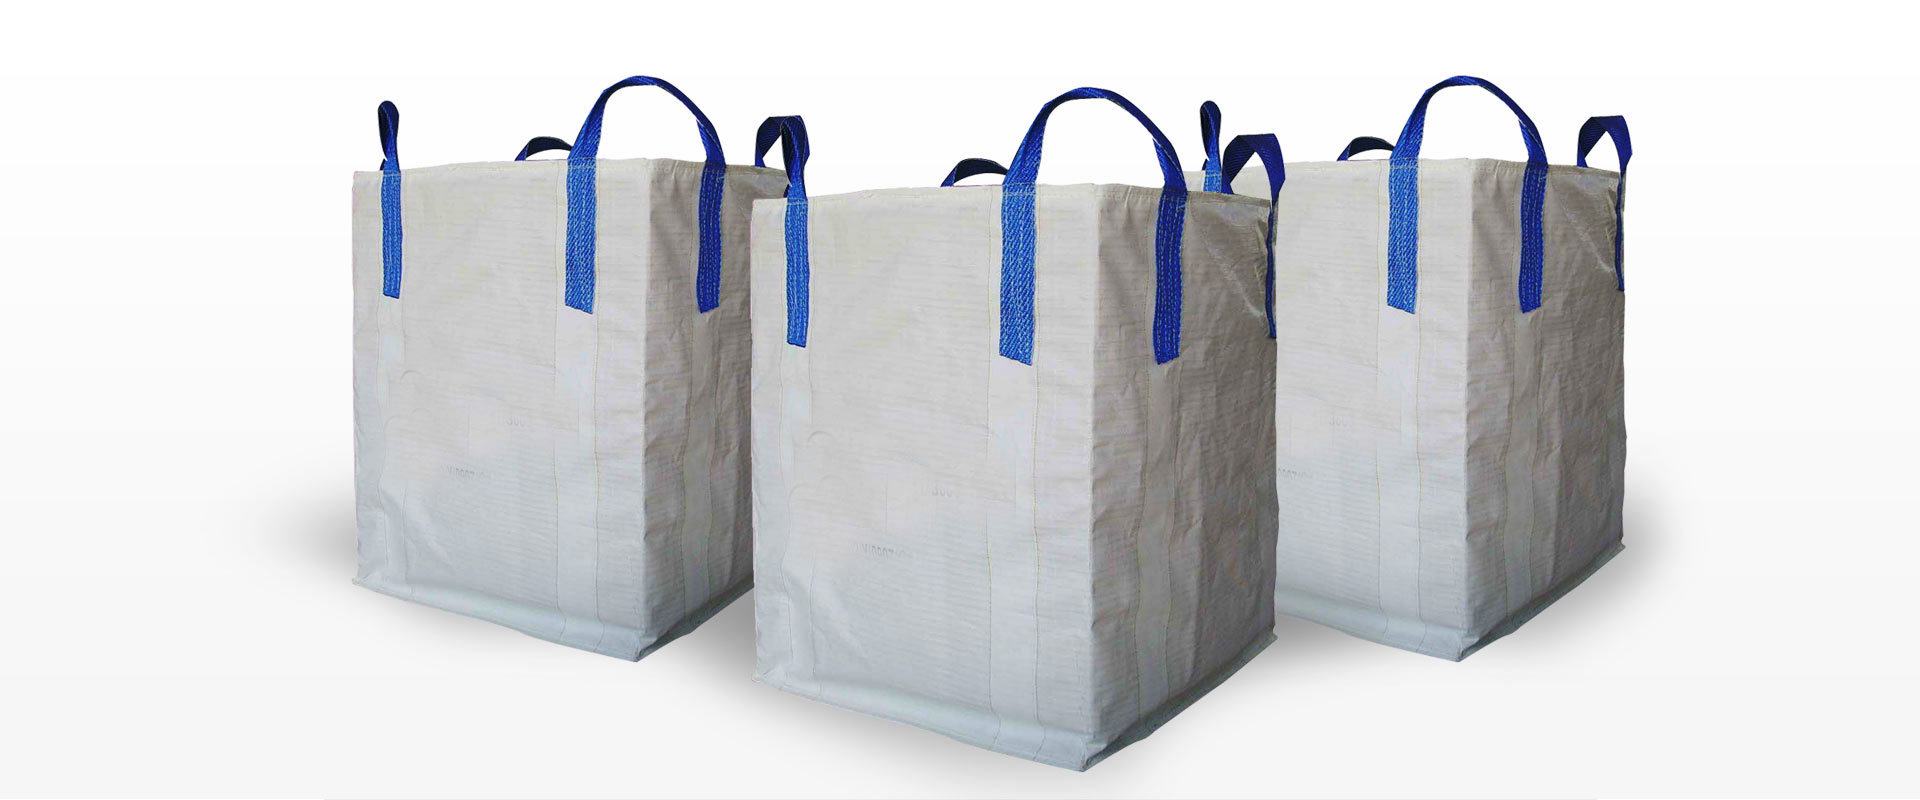 Finding The Right Bulk Bag For Your Business Needs